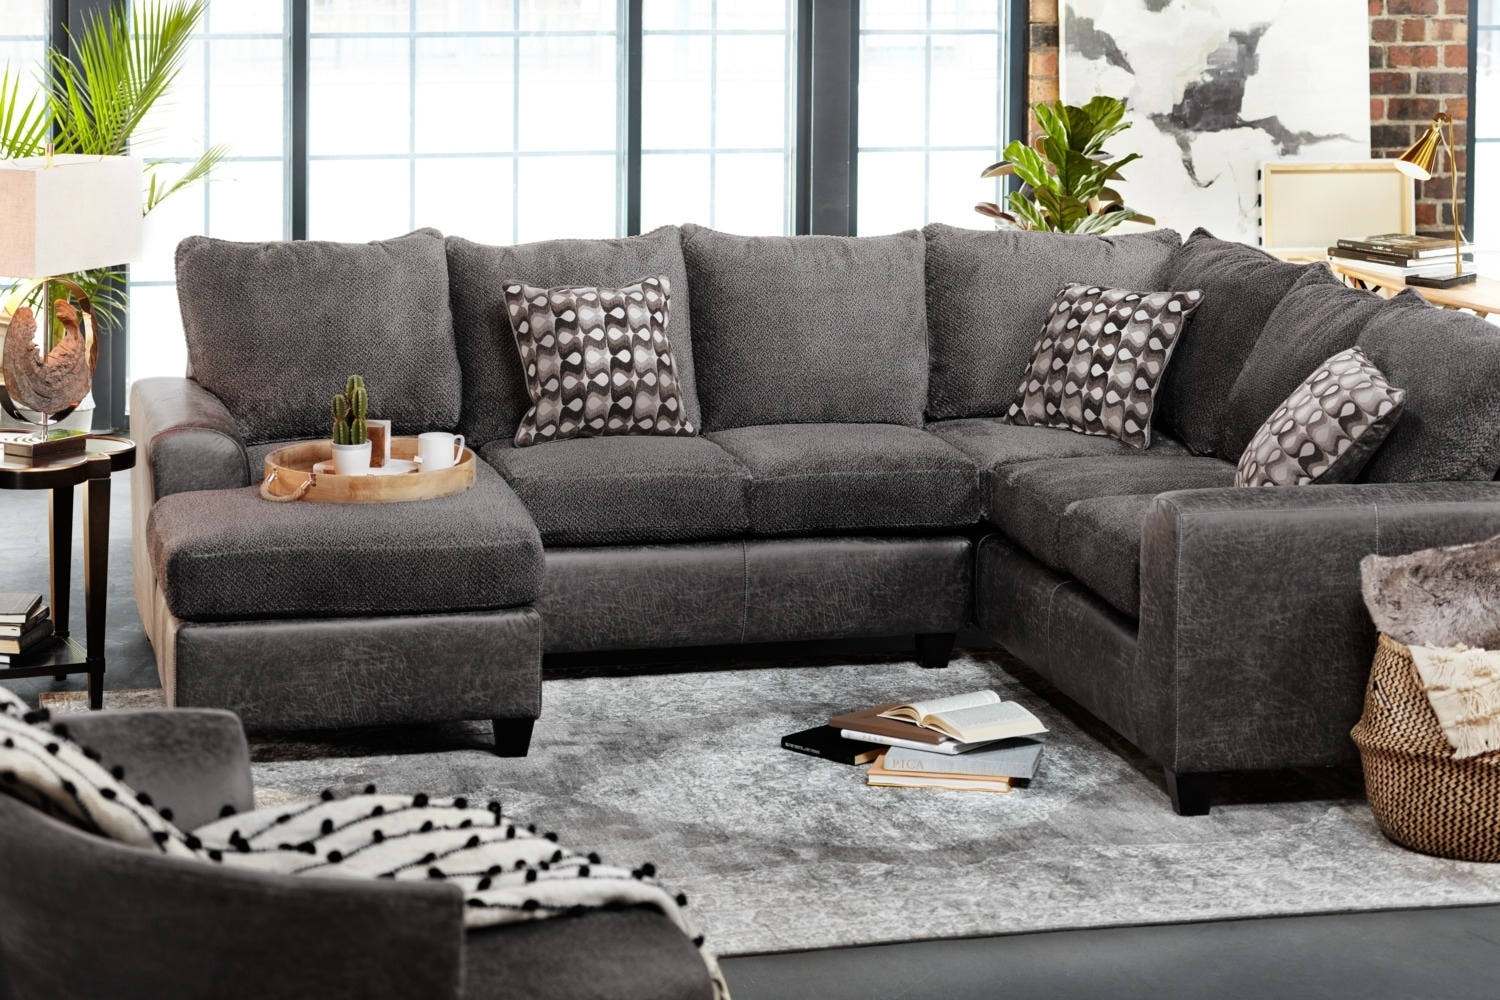 3 Piece Sectional – Locsbyhelenelorasa Regarding Harper Foam 3 Piece Sectionals With Raf Chaise (Photo 9 of 25)